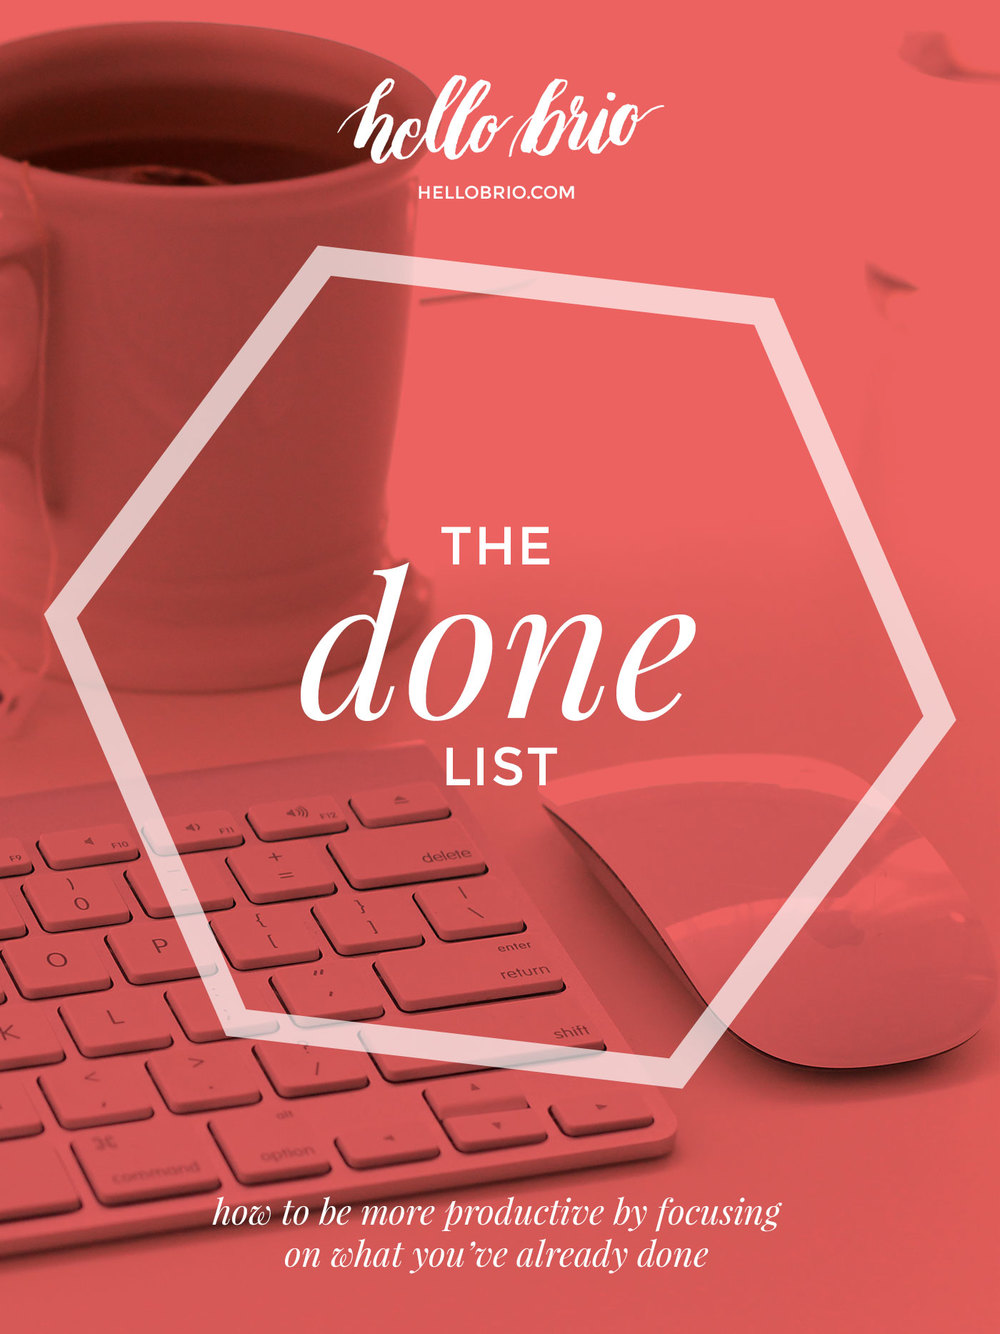 The done list: How to be more productive by focusing on what you've already done